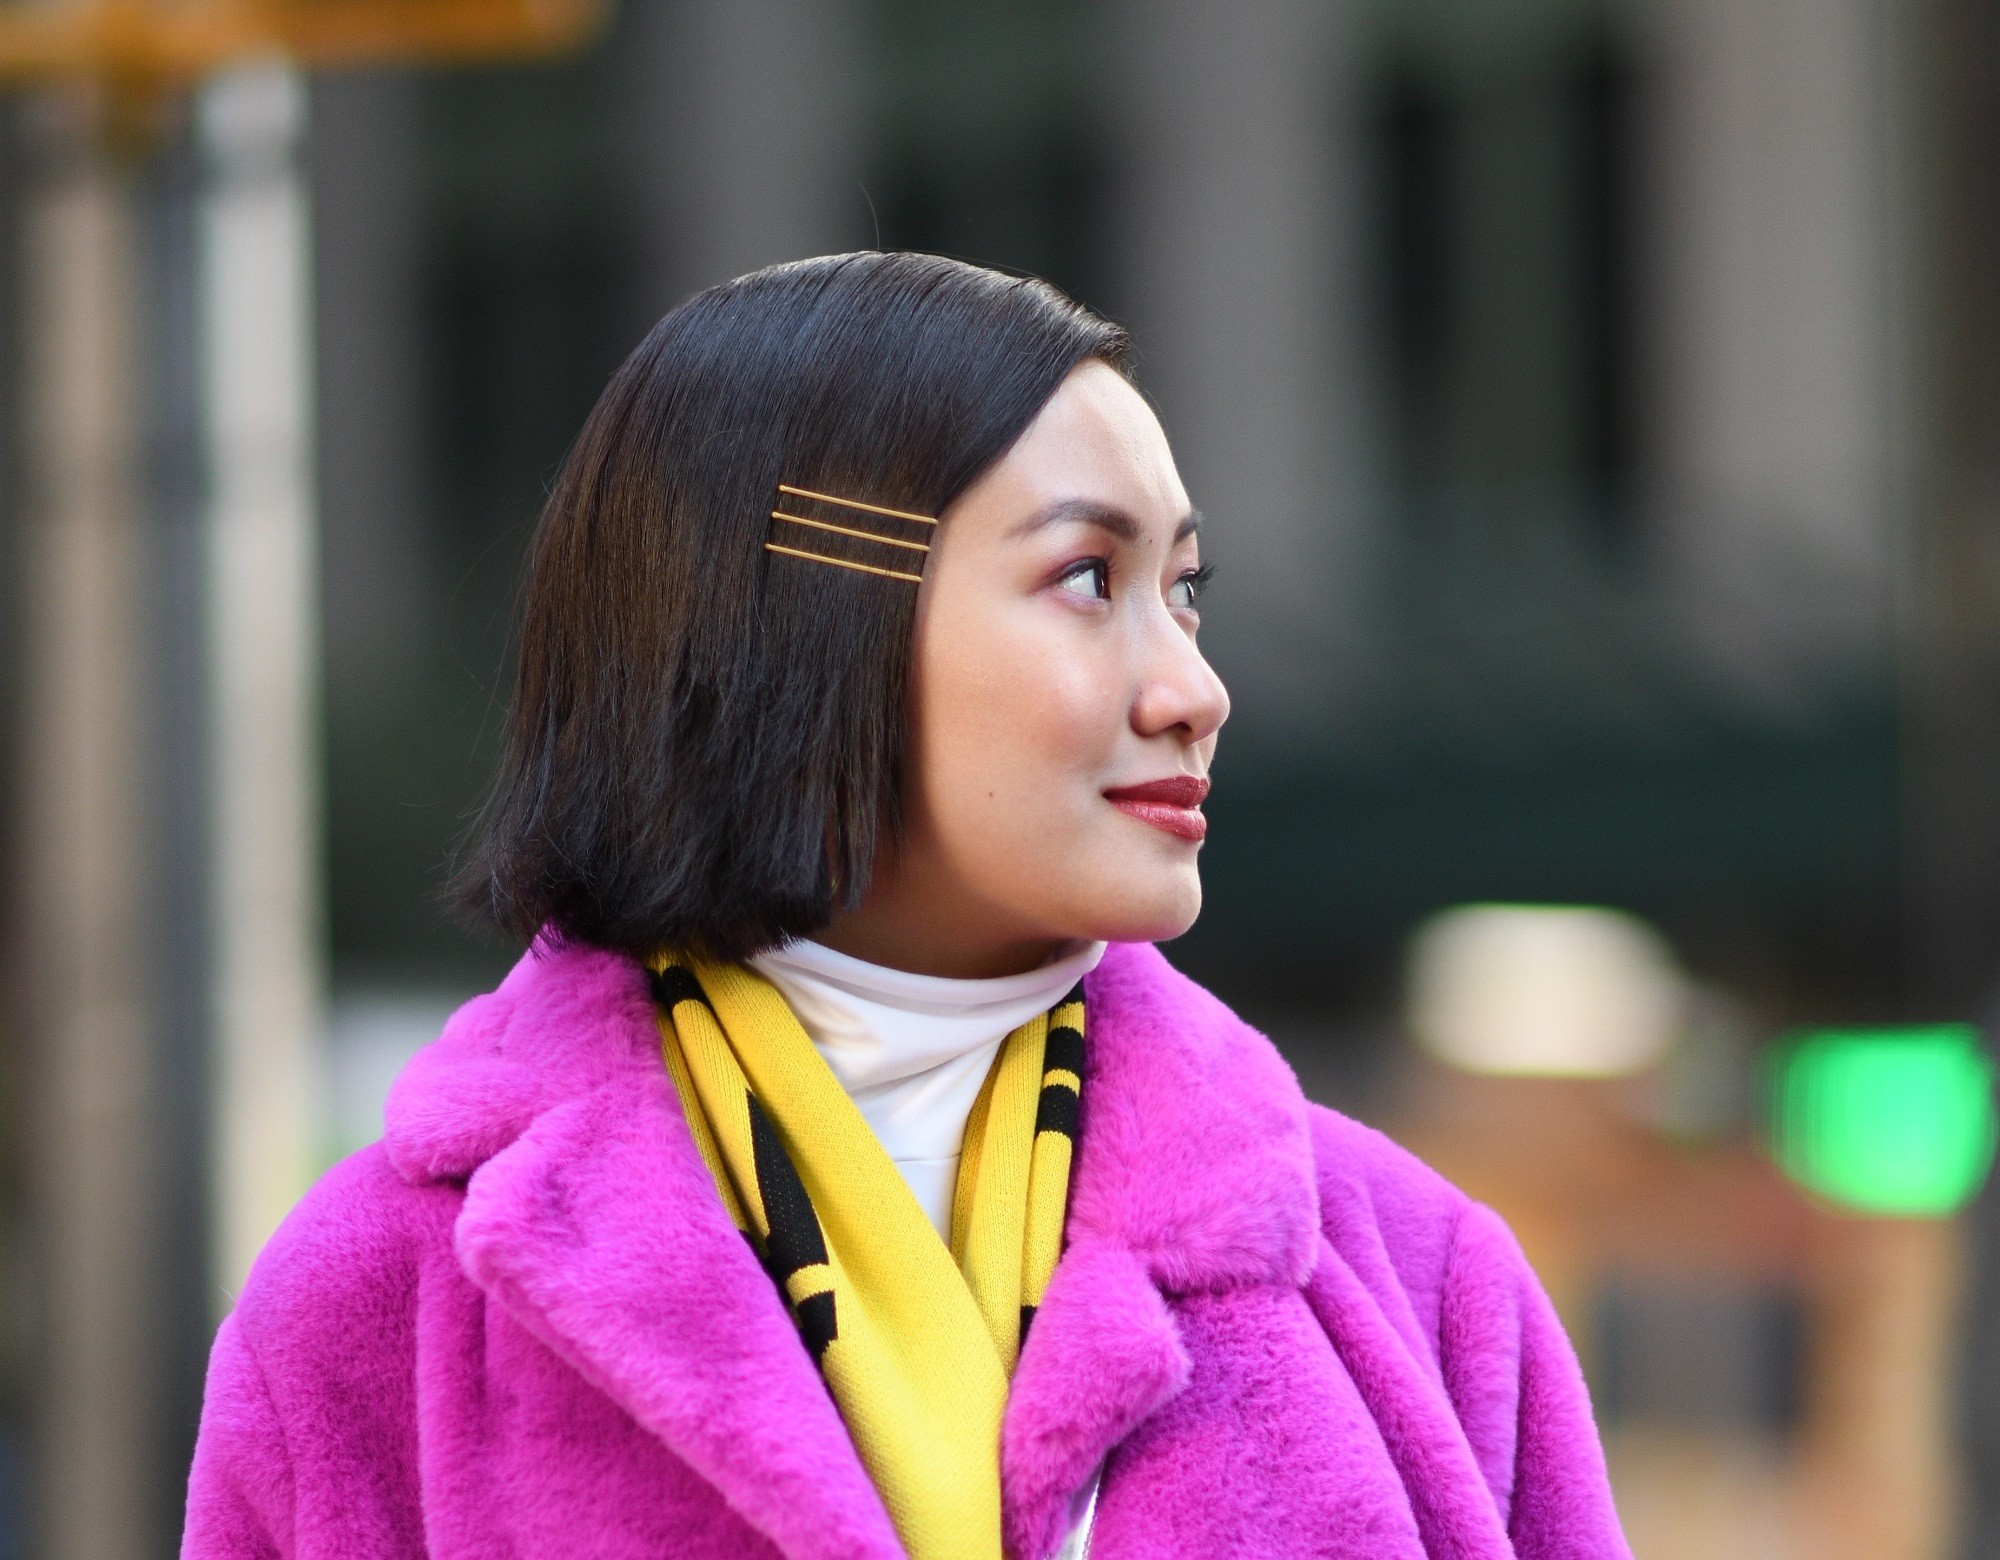 Side sweep hair: Closeup shot of an Asian woman with dark straight lob wearing a pink coat outdoors